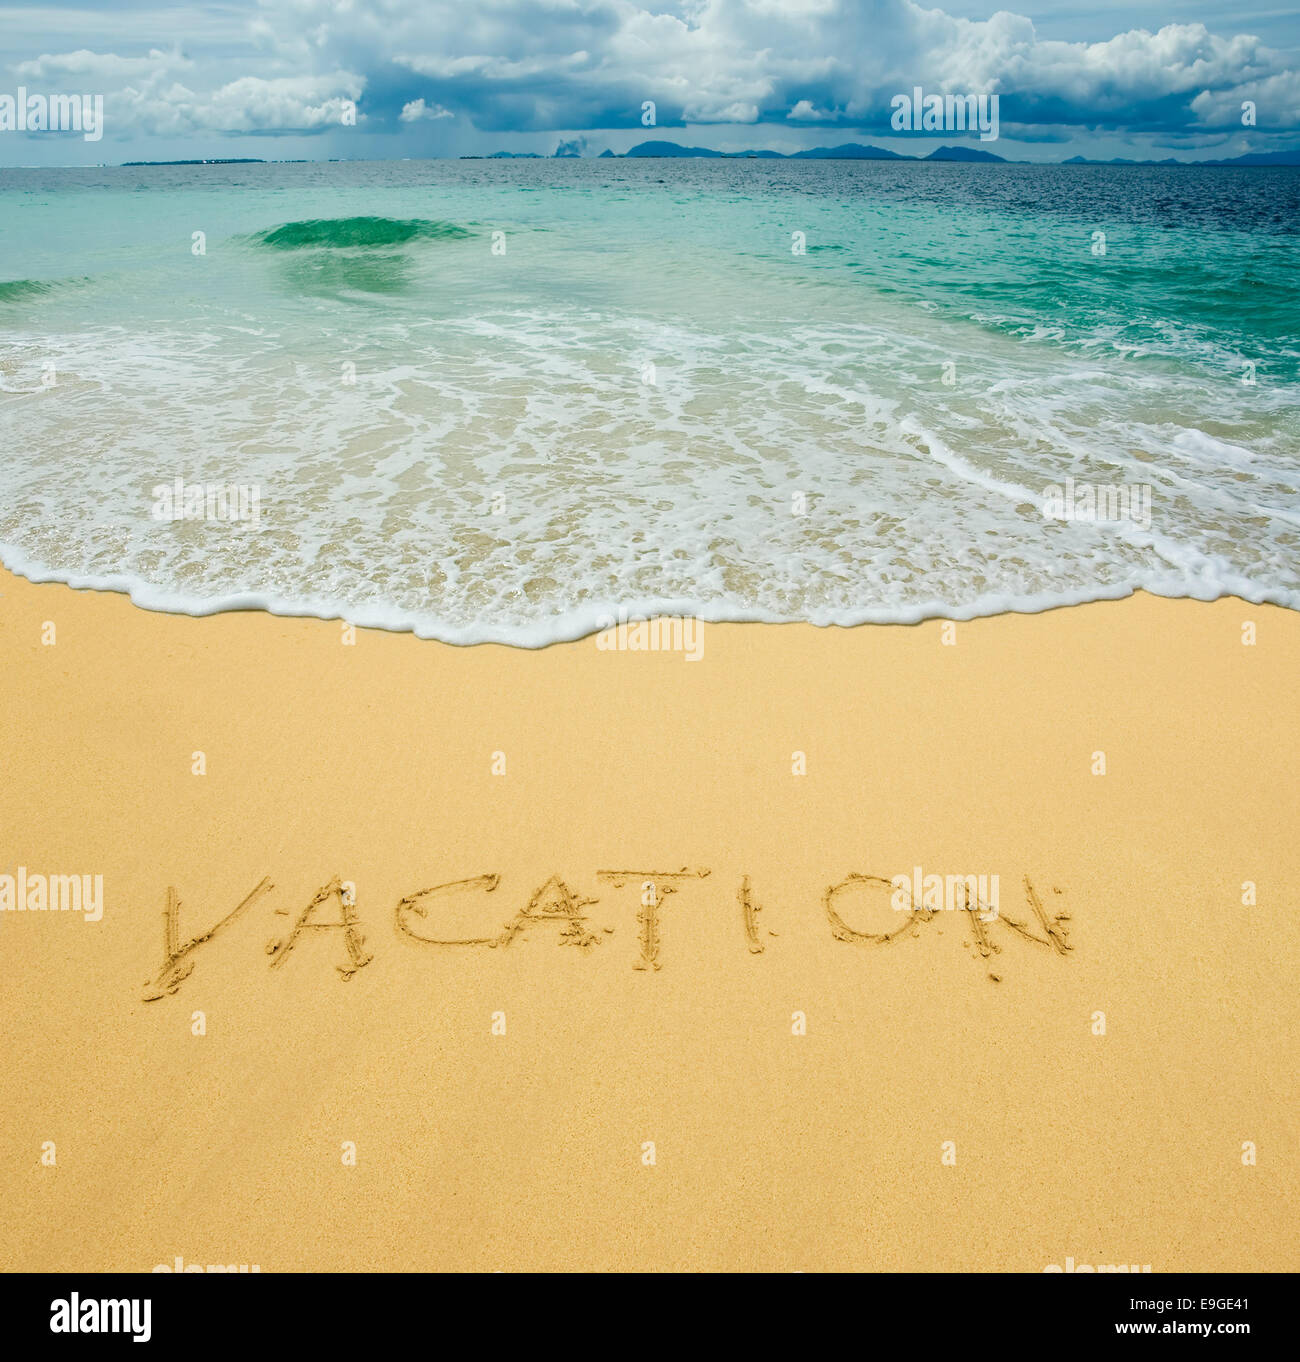 vacation written in a sandy tropical beach - Stock Image